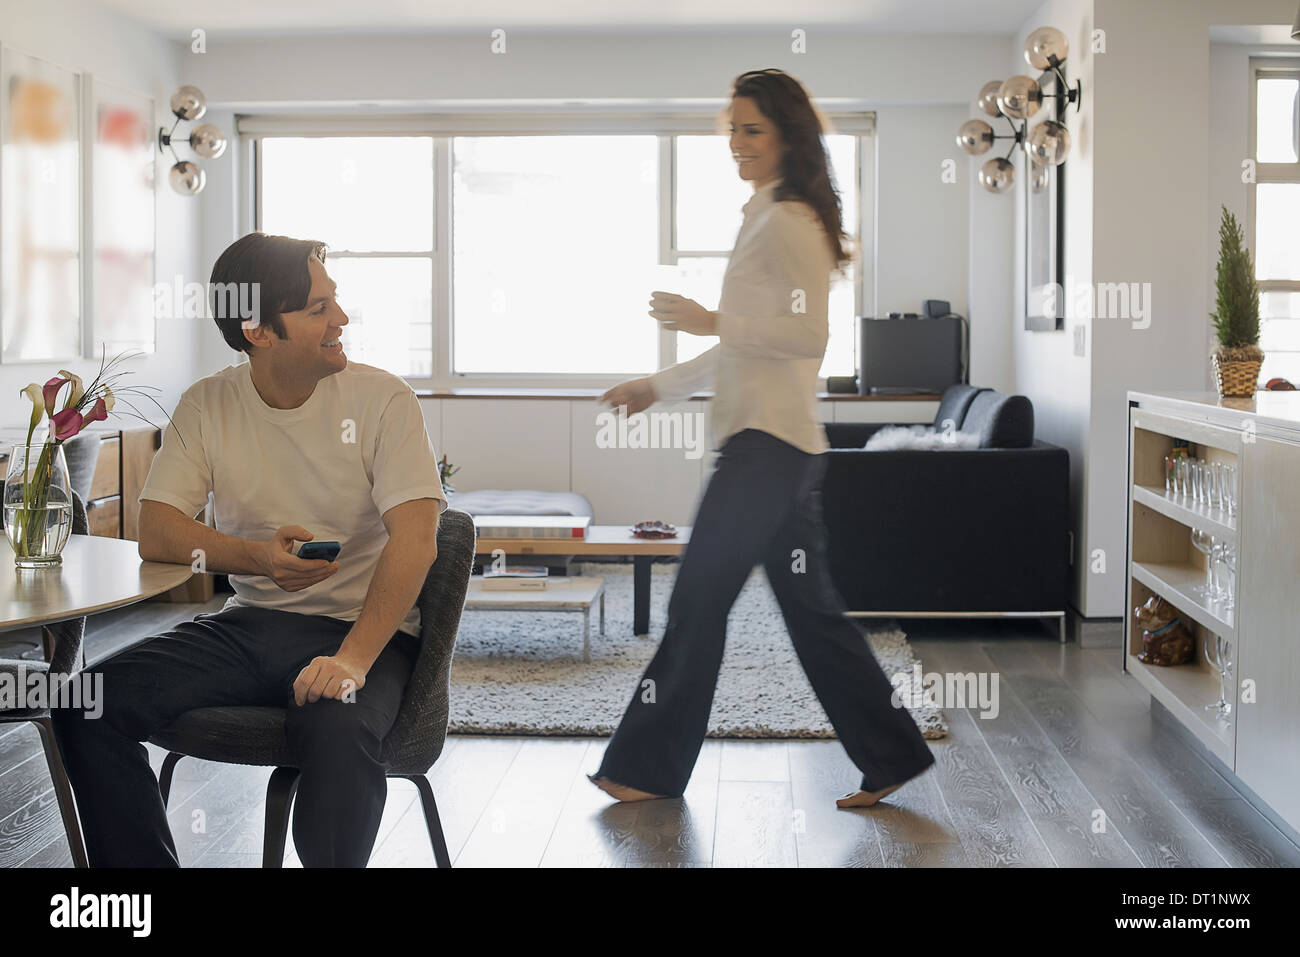 Couple at Home Man using smartphone Woman walking past - Stock Image